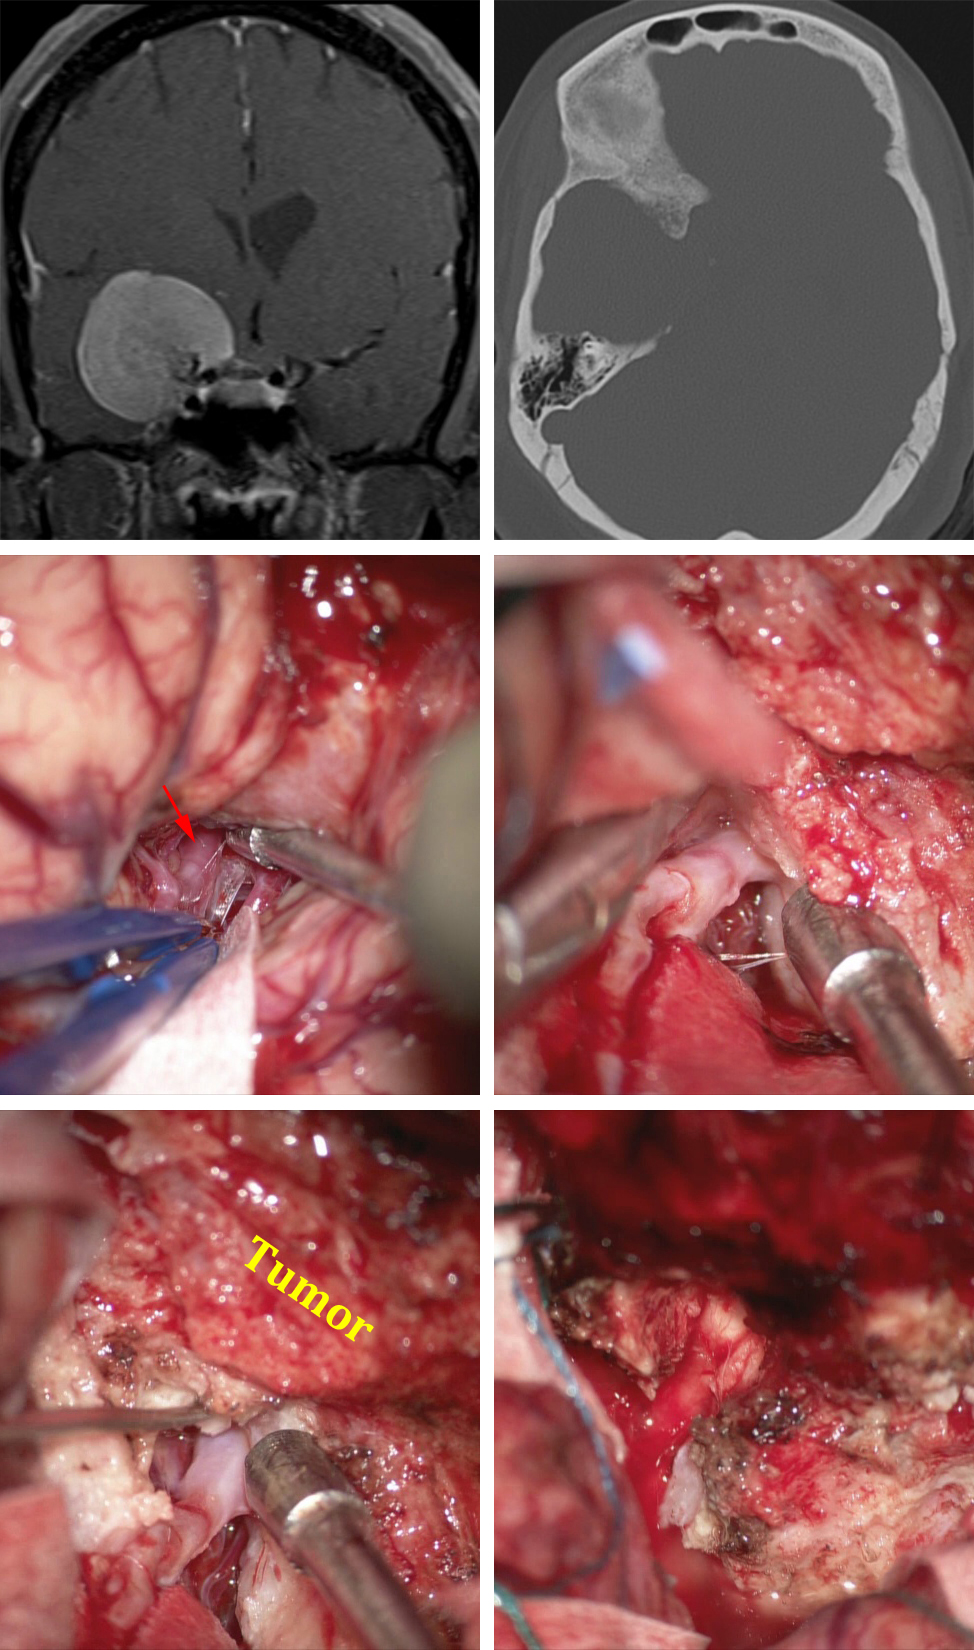 Figure 18: The MR images of the first row demonstrate the mass and associated orbital roof hyperostosis. Extradural clinoidectomy decompressed the optic nerve early. The distal MCA branches were dissected and protected (second row). As dissection continued toward the skull base, the tumor was divided along the ICA; this maneuver facilitated tumor mobilization (last row, left image). The optic nerve was found distal in its foramen and generously released via removal of the intracanalicular portion of the tumor (last row, right image).